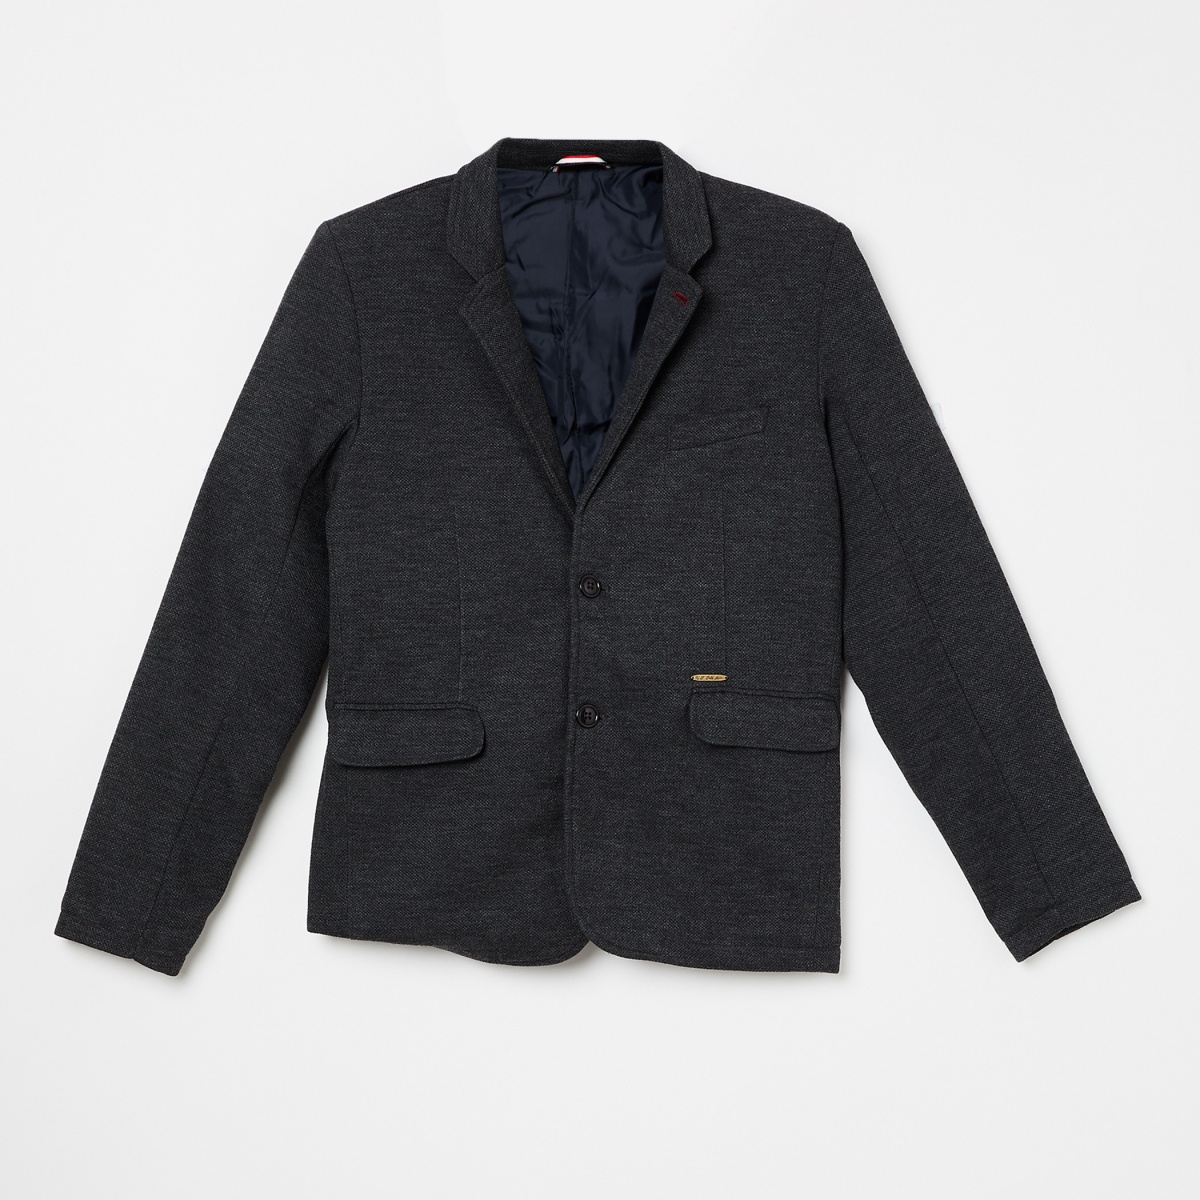 U.S. POLO ASSN KIDS Elbow Patches Single-Breasted Blazer